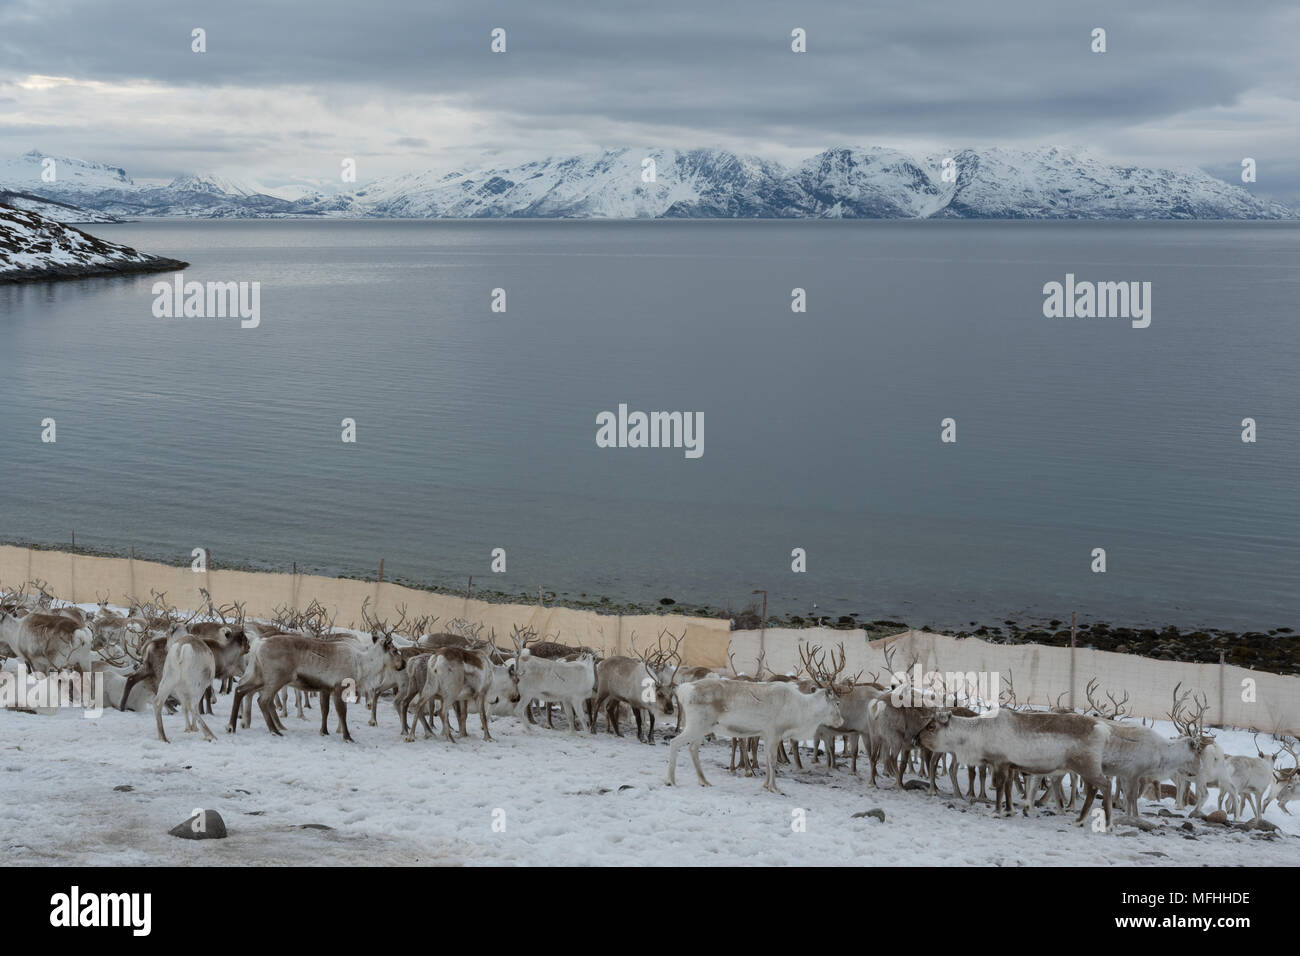 Herd of reindeer before moving to summer pastures - Stock Image